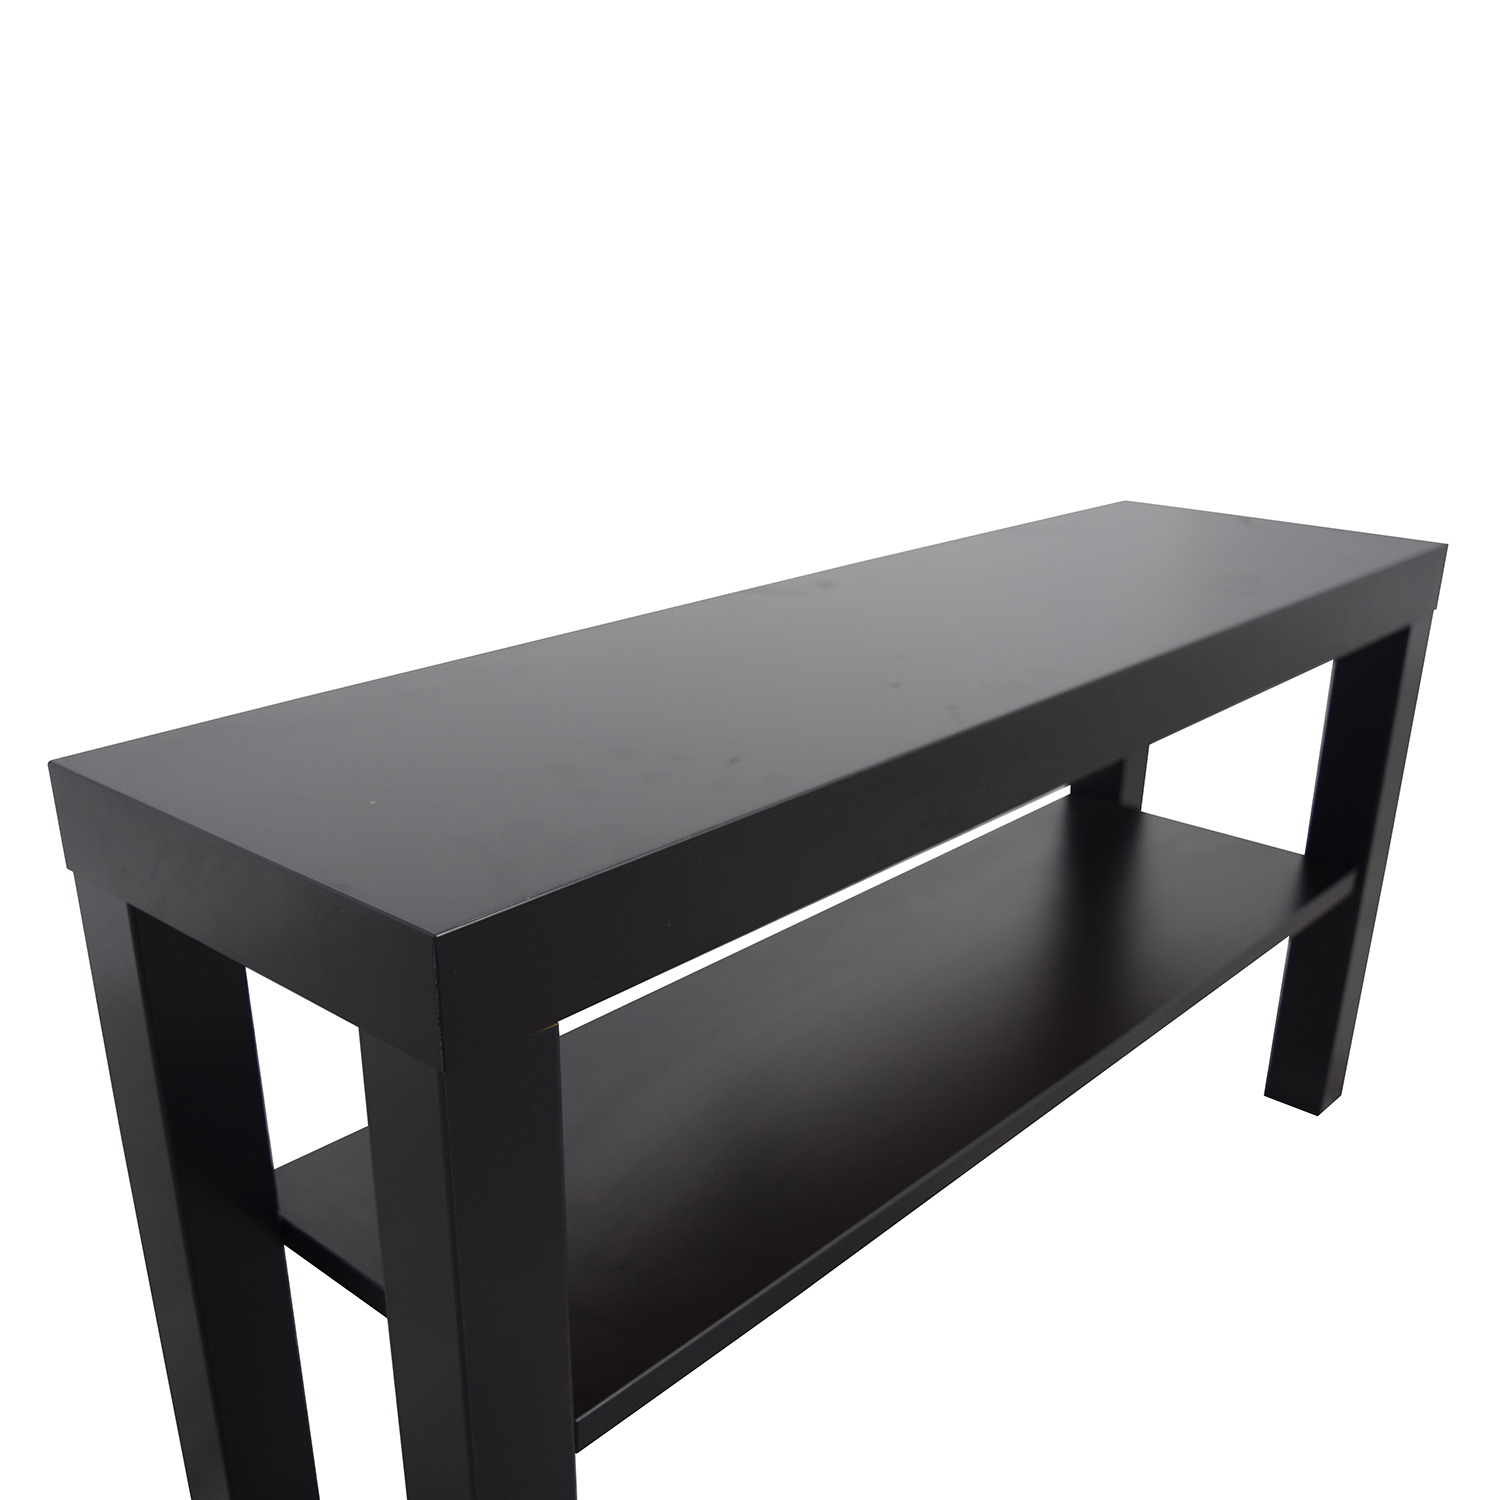 59 off ikea ikea lack black tv stand storage - Ikea table tv ...